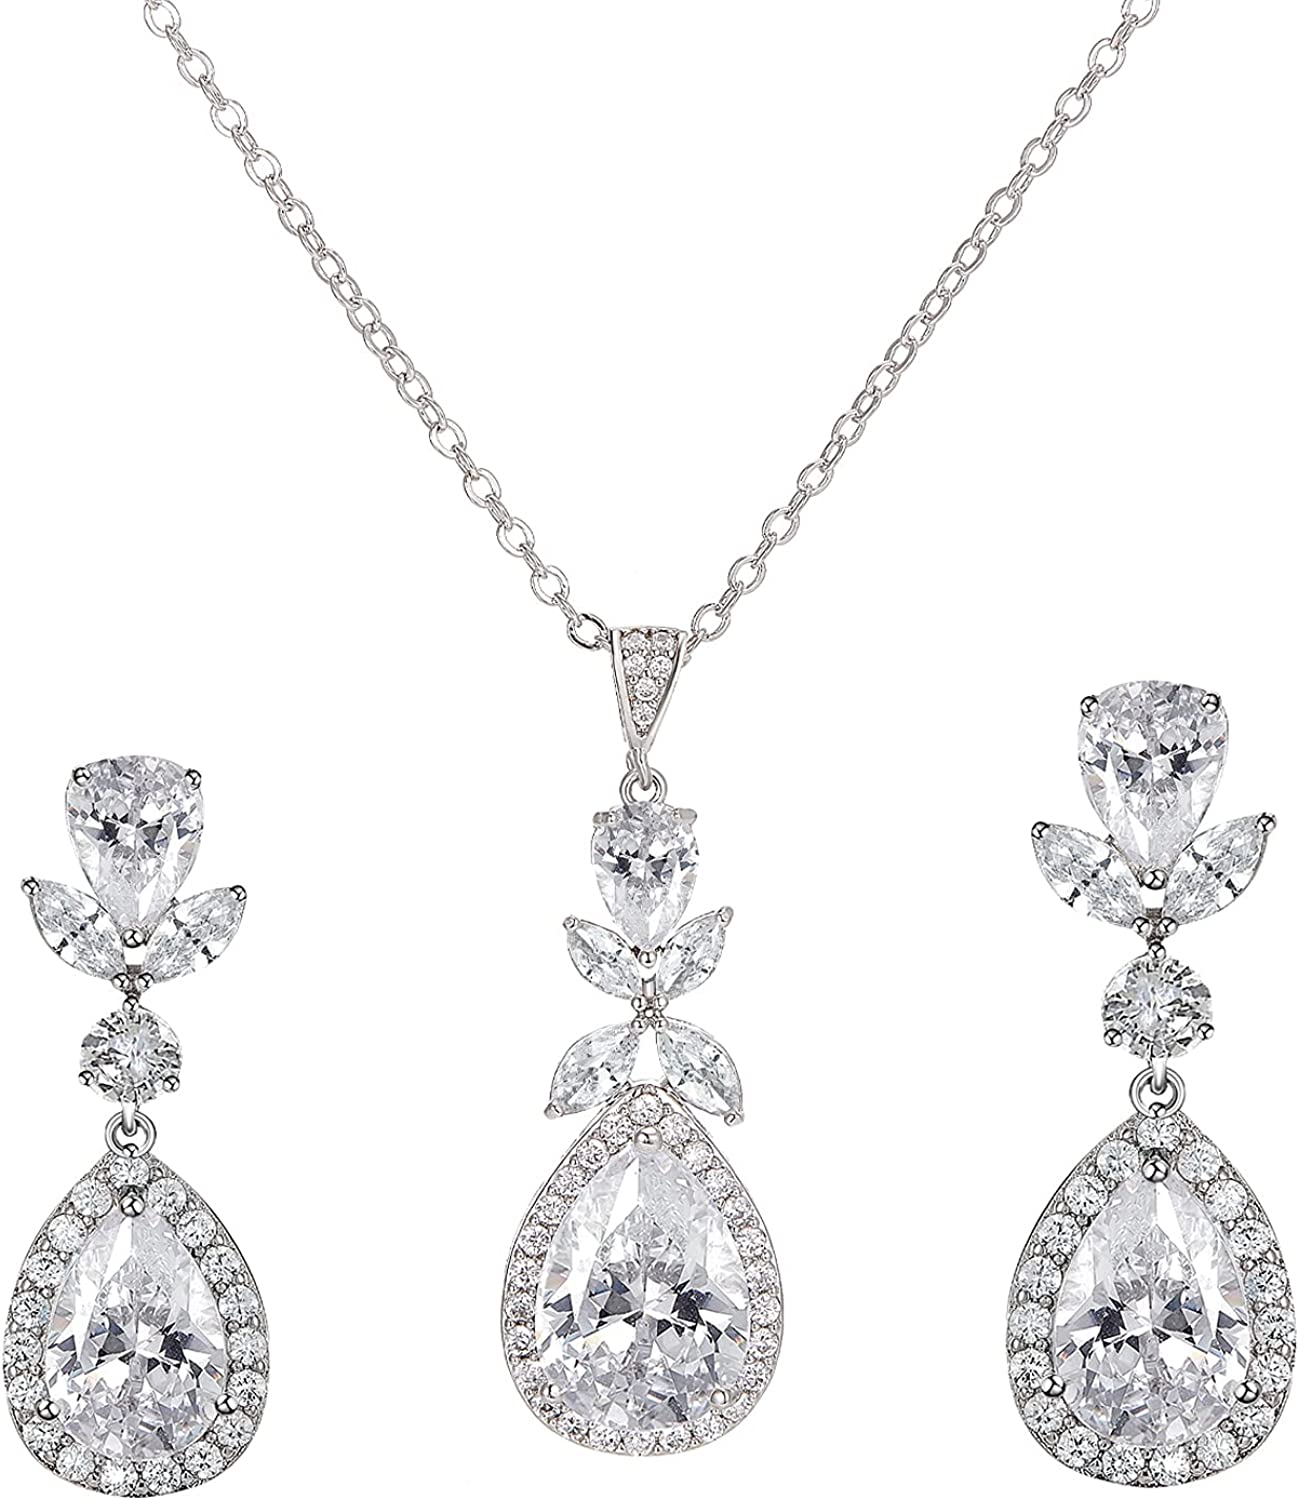 SWEETV Teardrop Wedding Bridal Jewelry Sets for Bridesmaids, Brides, Crystal Necklace Earrings Set for Women, Cubic Zirconia Wedding Prom Costume Jewelry Gifts